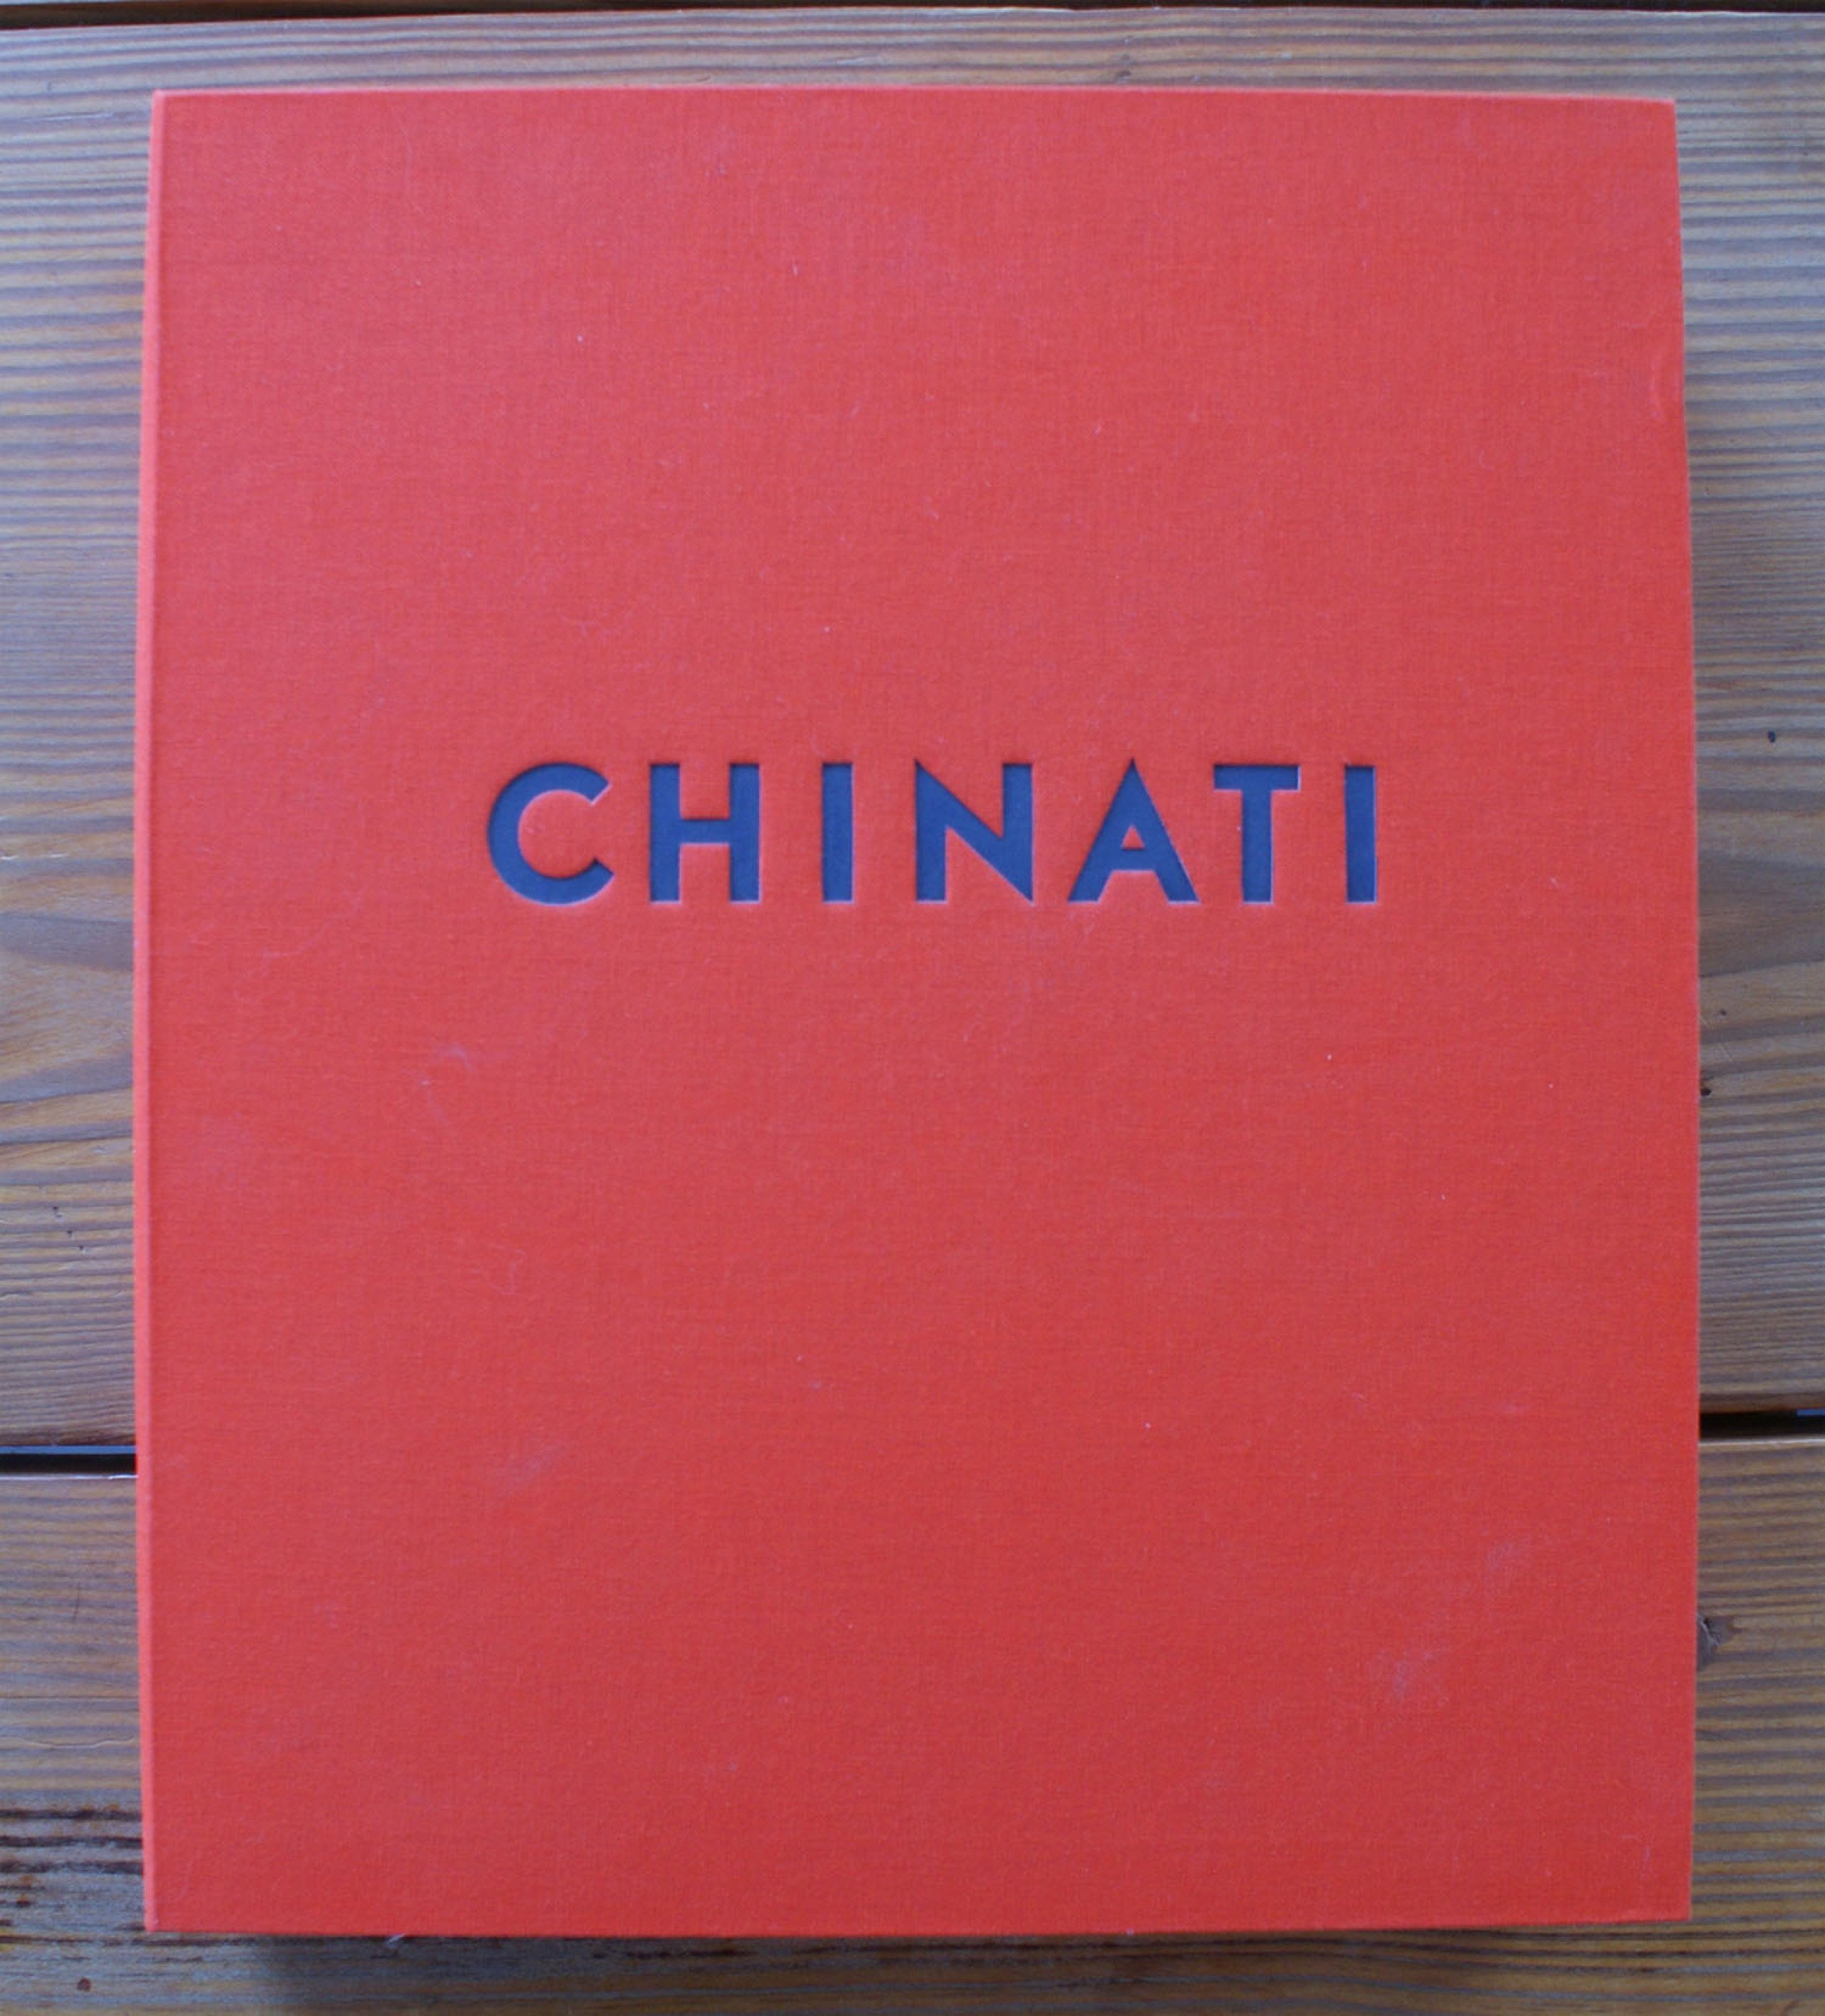 Donald Judd, Chinati: The Vision of Donald Judd